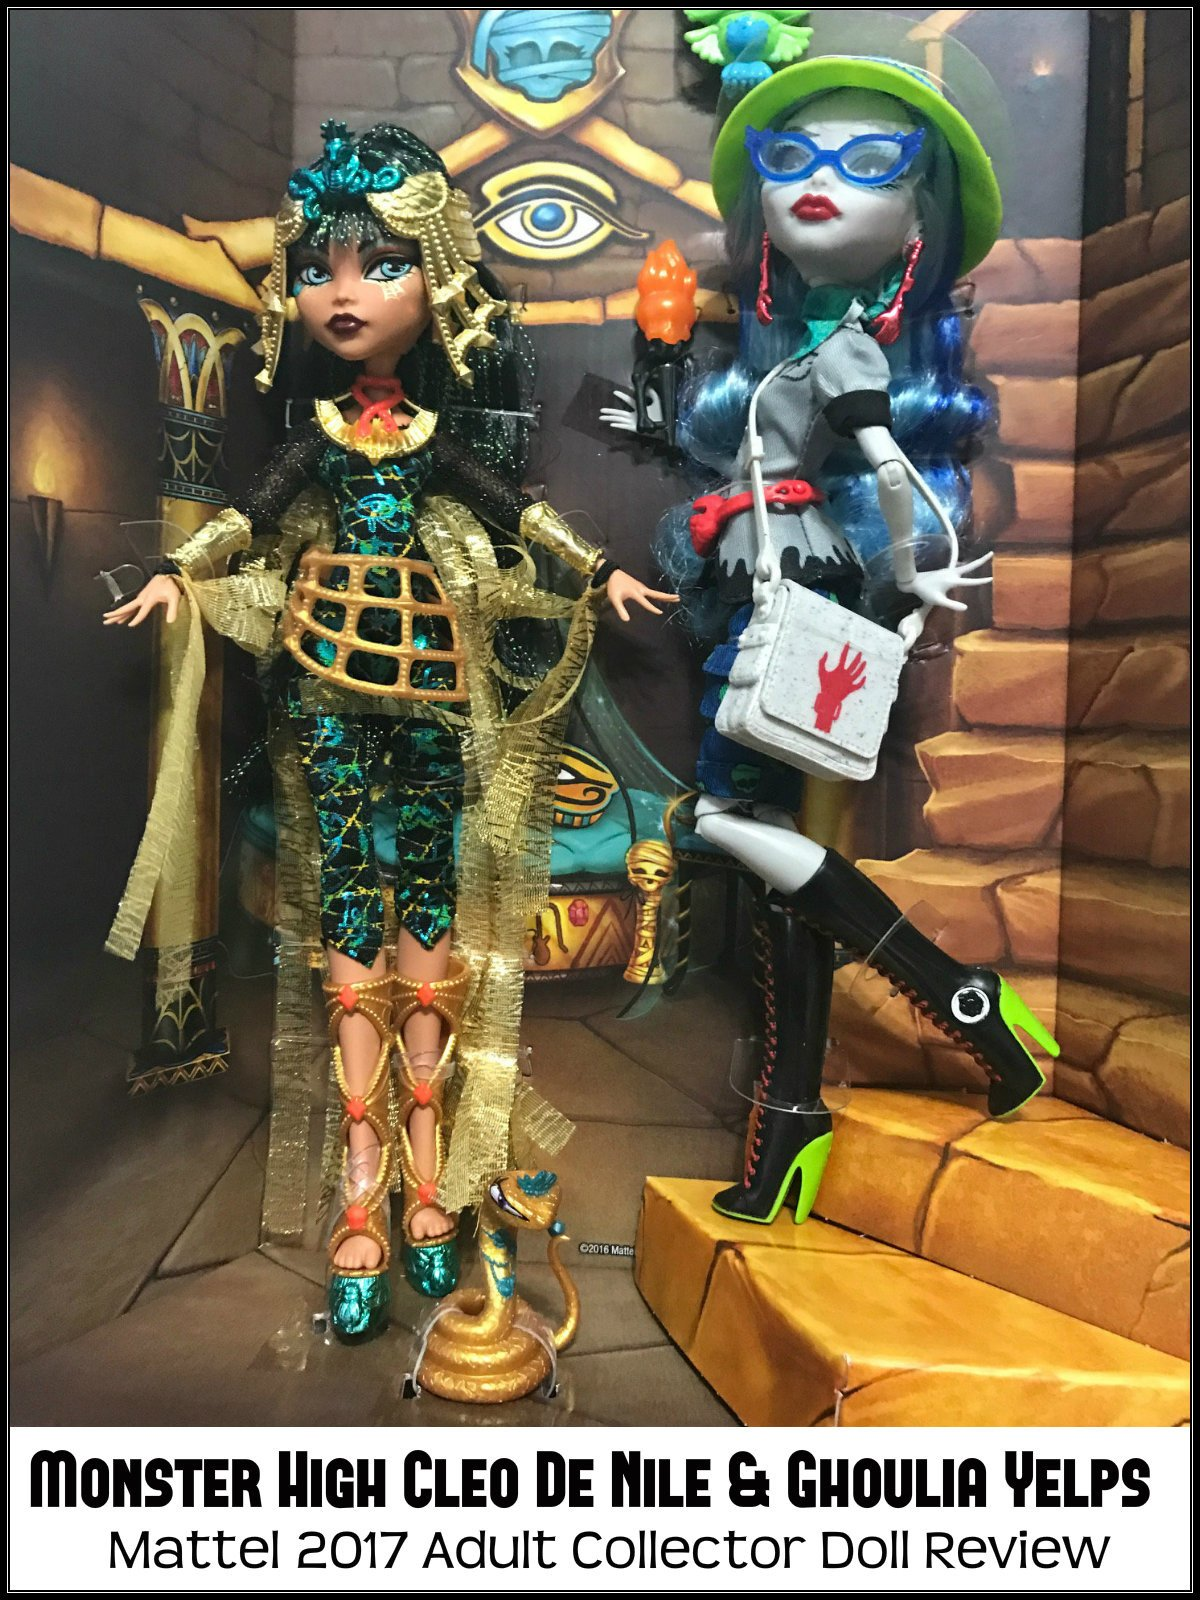 Review: Monster High Cleo De Nile & Ghoulia Yelps Mattel 2017 Adult Collector Doll Review on Amazon Prime Instant Video UK